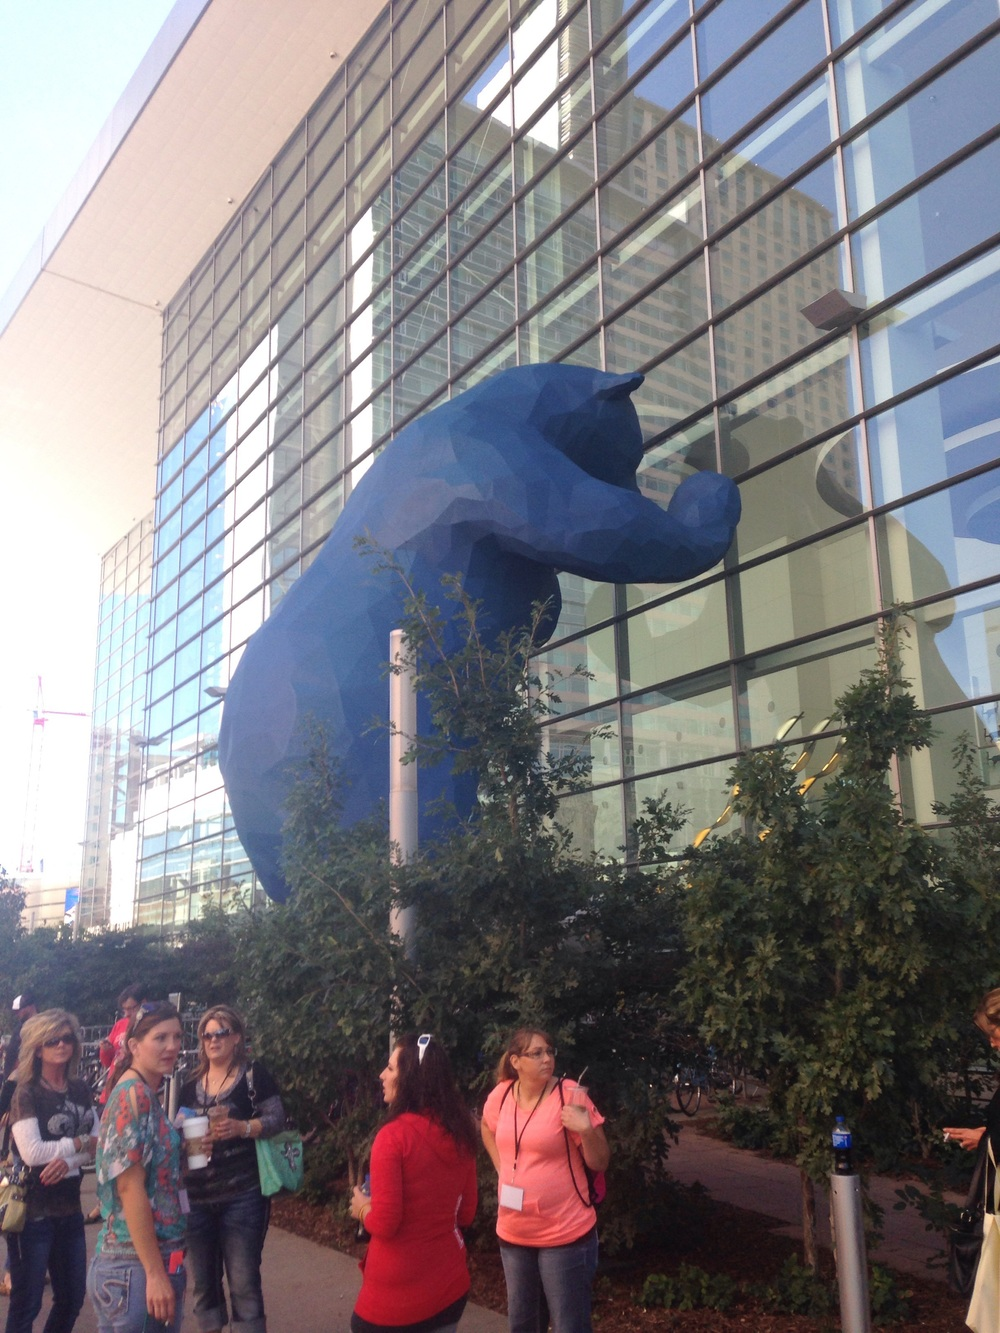 The very large bear looking into the convention center